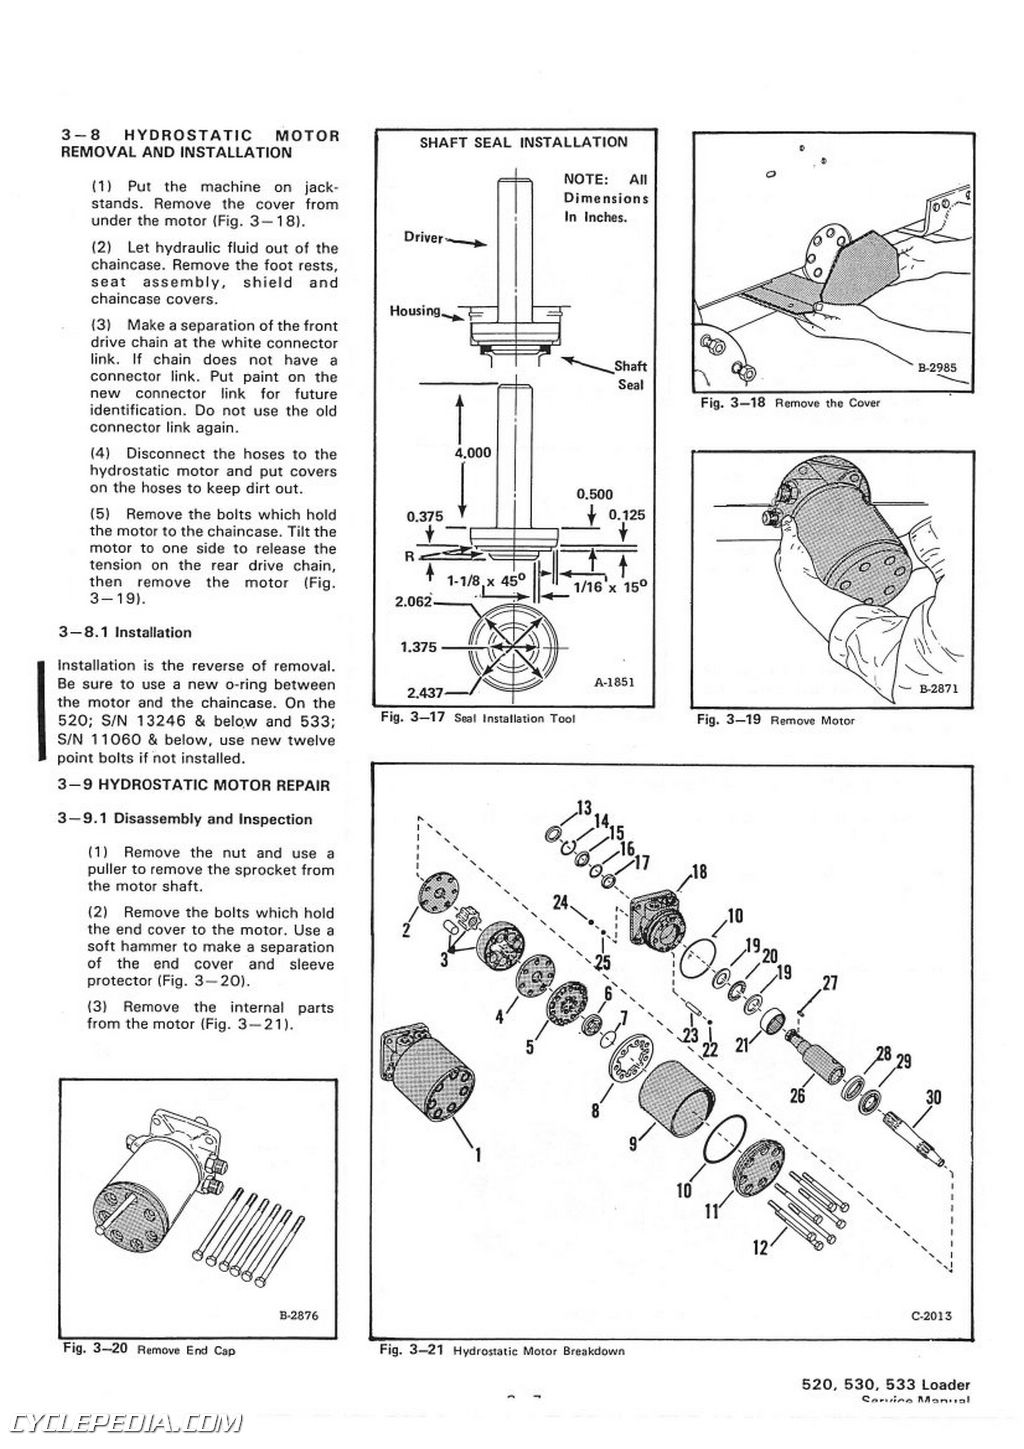 Bobcat 520 530 533 Skid Steer Service Manual